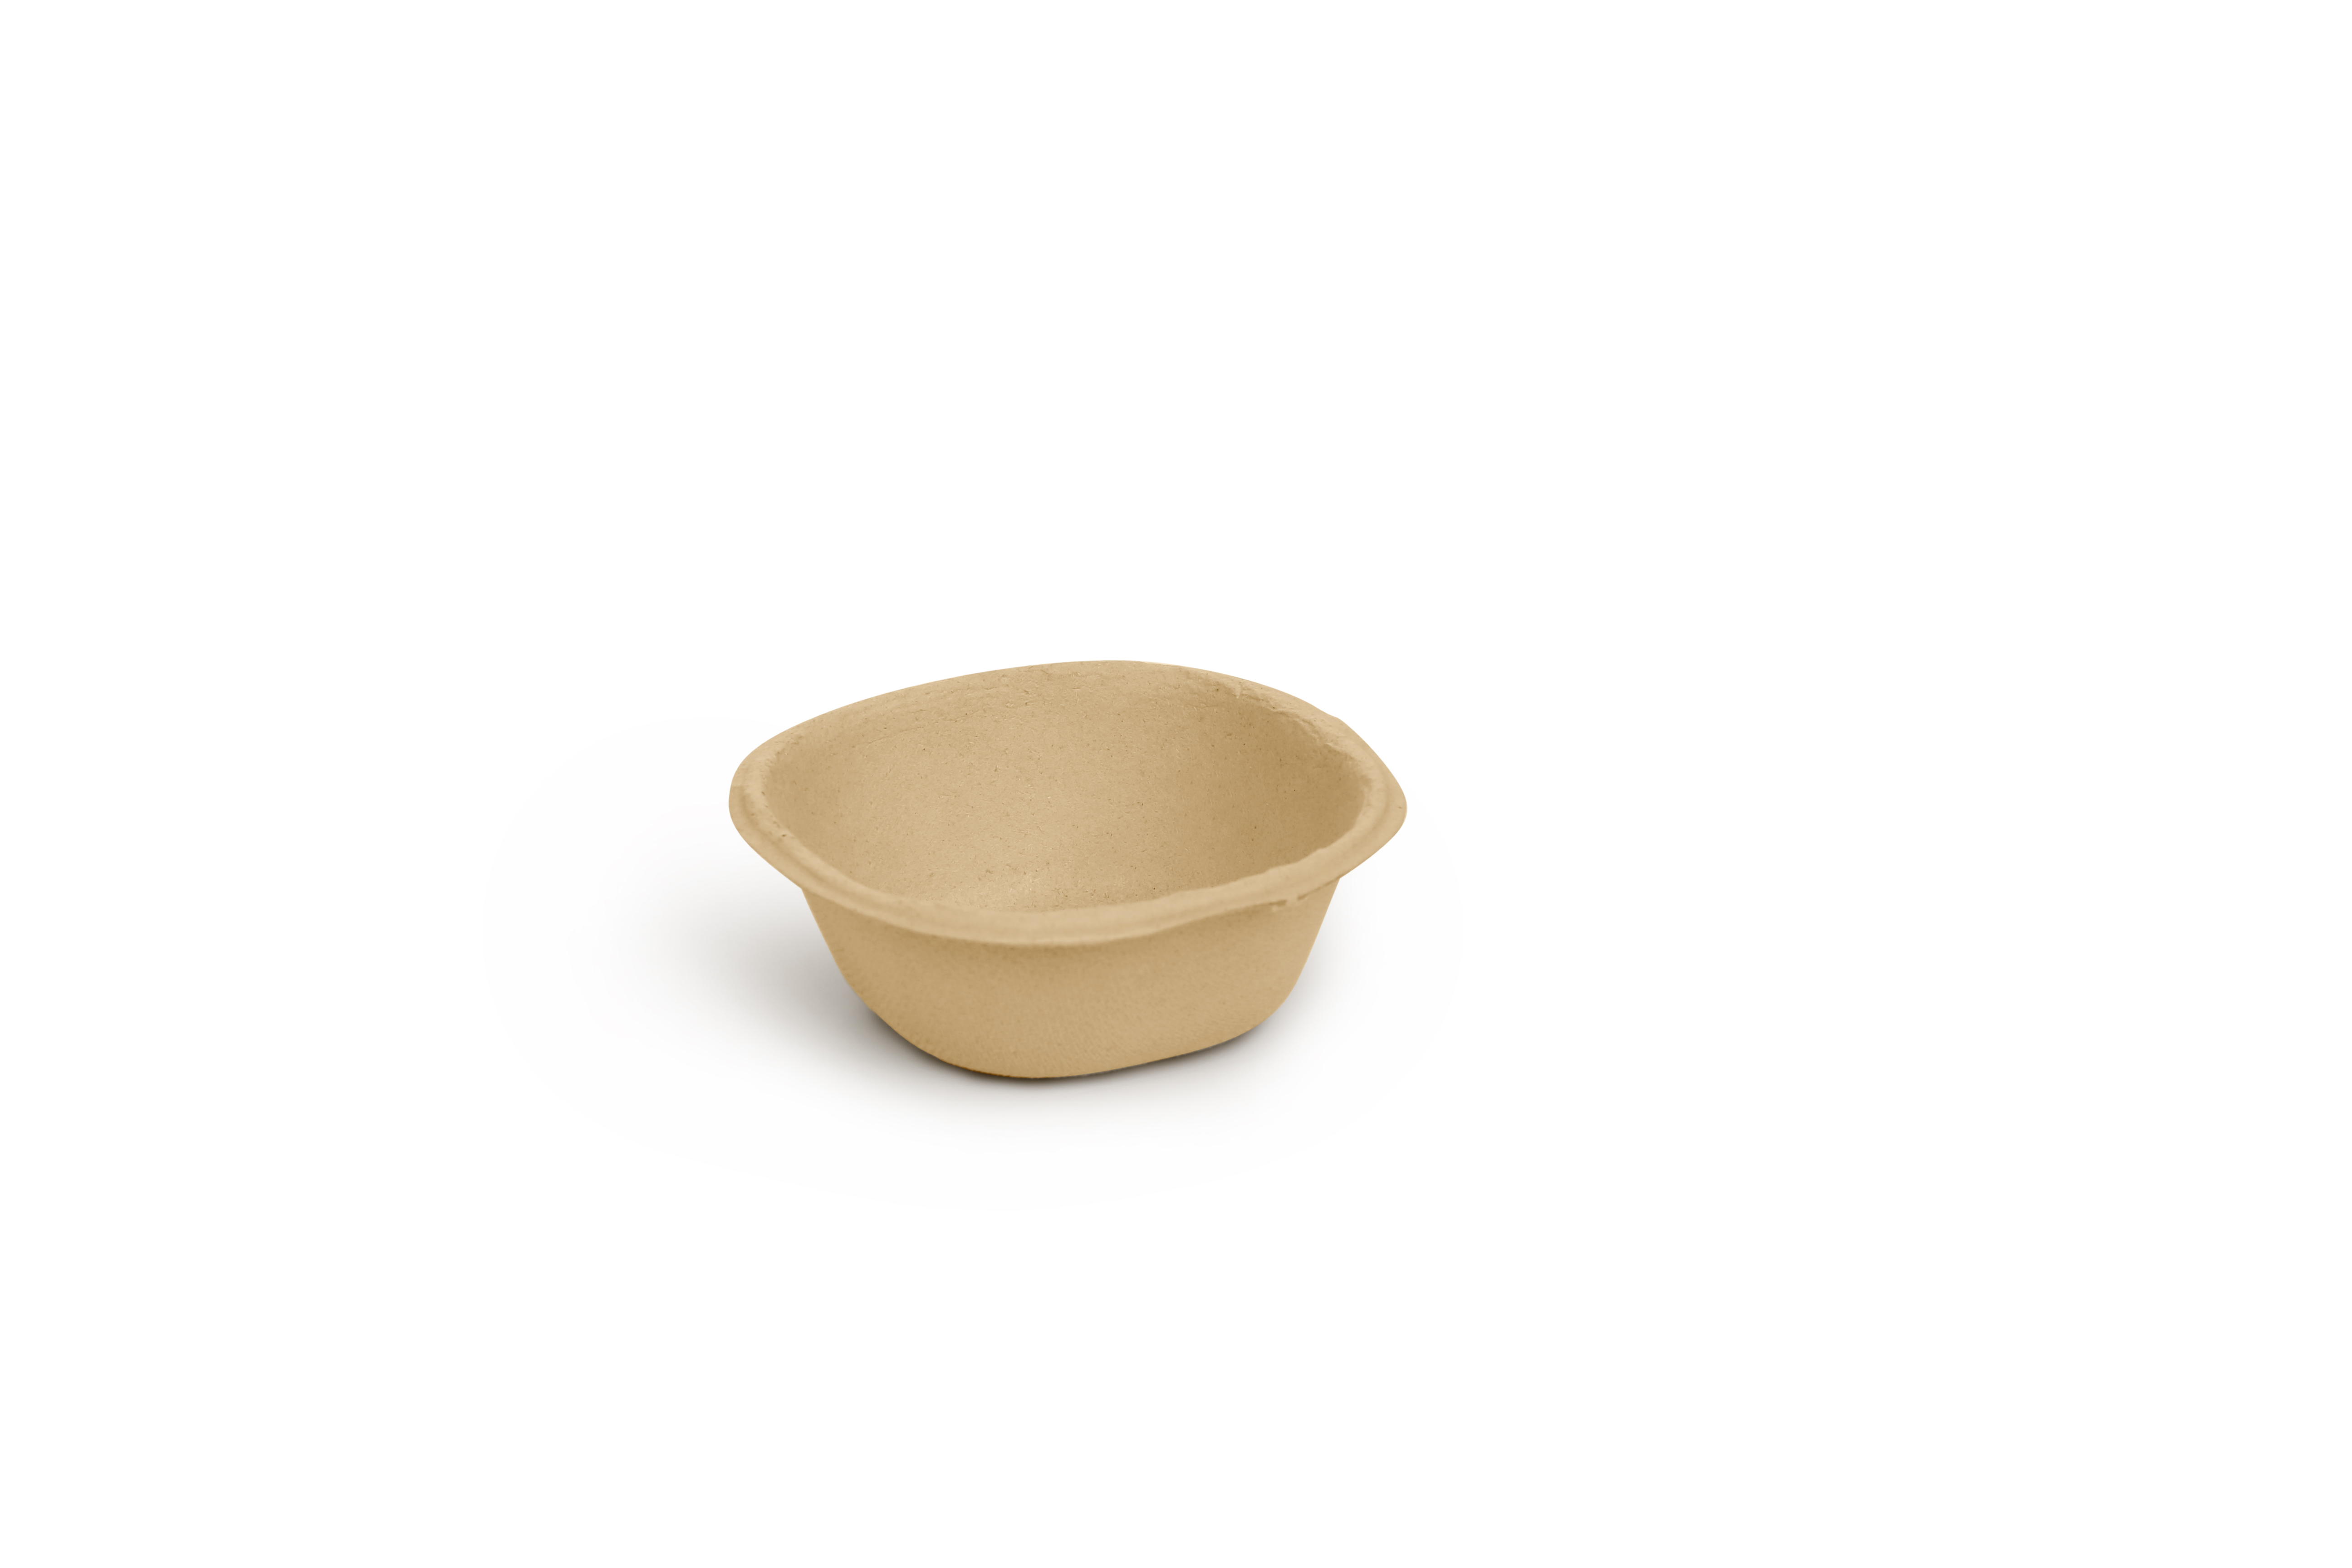 Back to nature 1000 pieces 120 ml bowl bagasse biodegradable